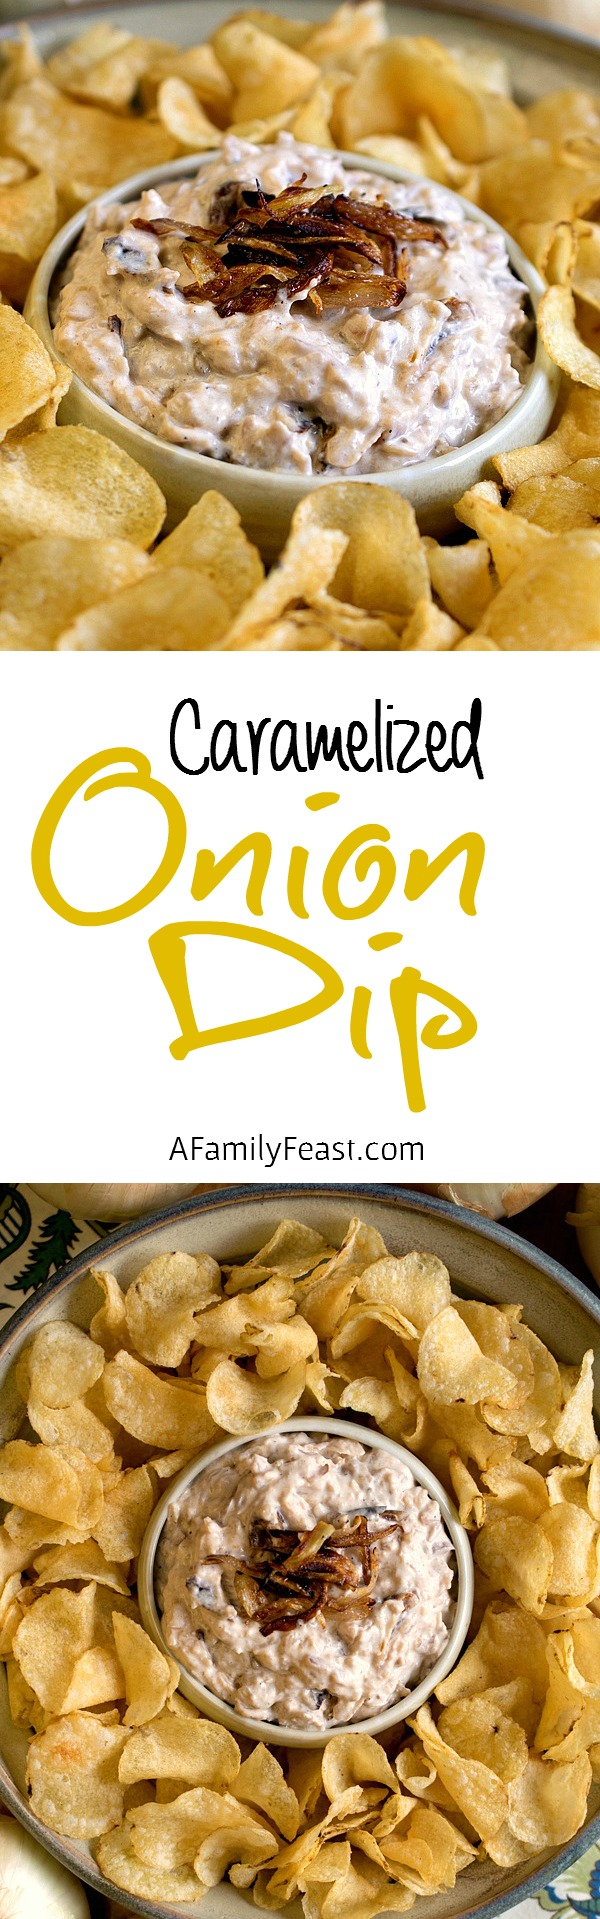 Caramelized Onion And Shallot Dip Recipes — Dishmaps